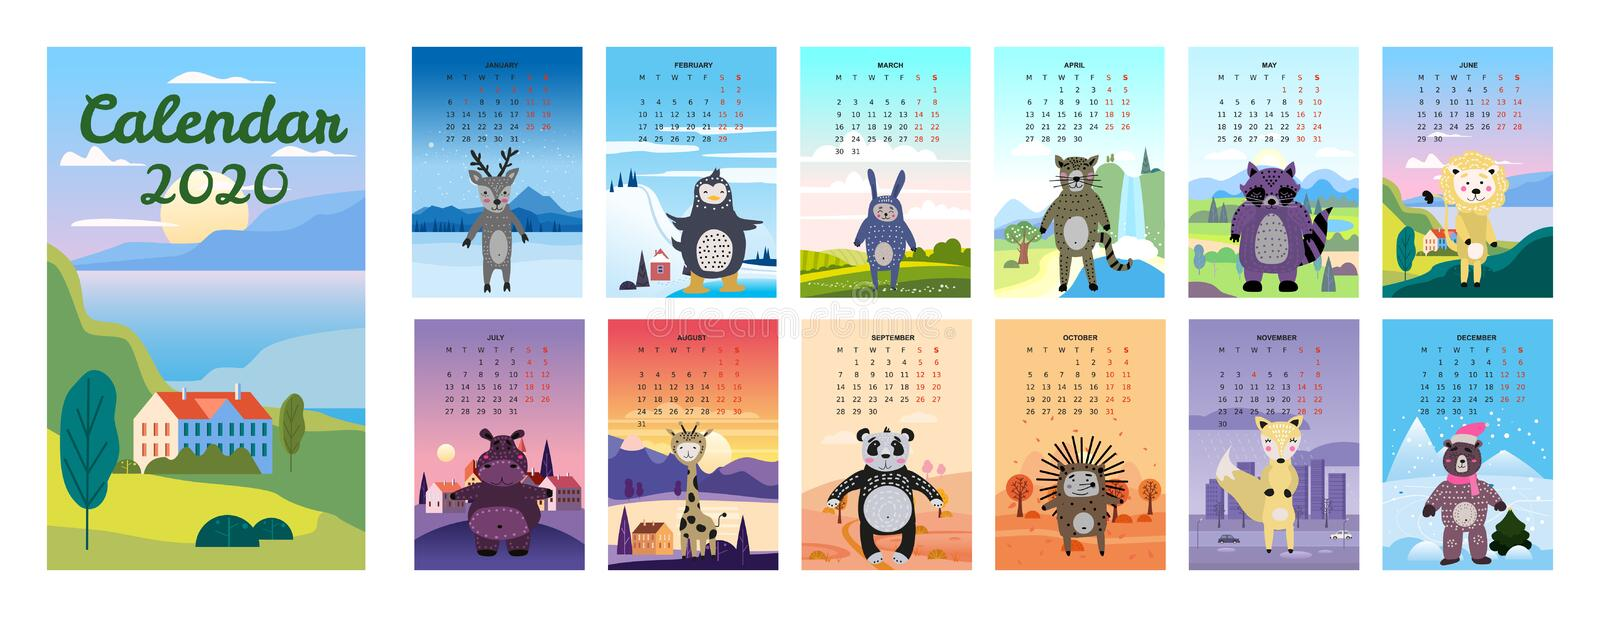 2020 Calendar Cute Animals Characters background landscapes minimal style. Monthly Vector illustration Isolated royalty free stock photography